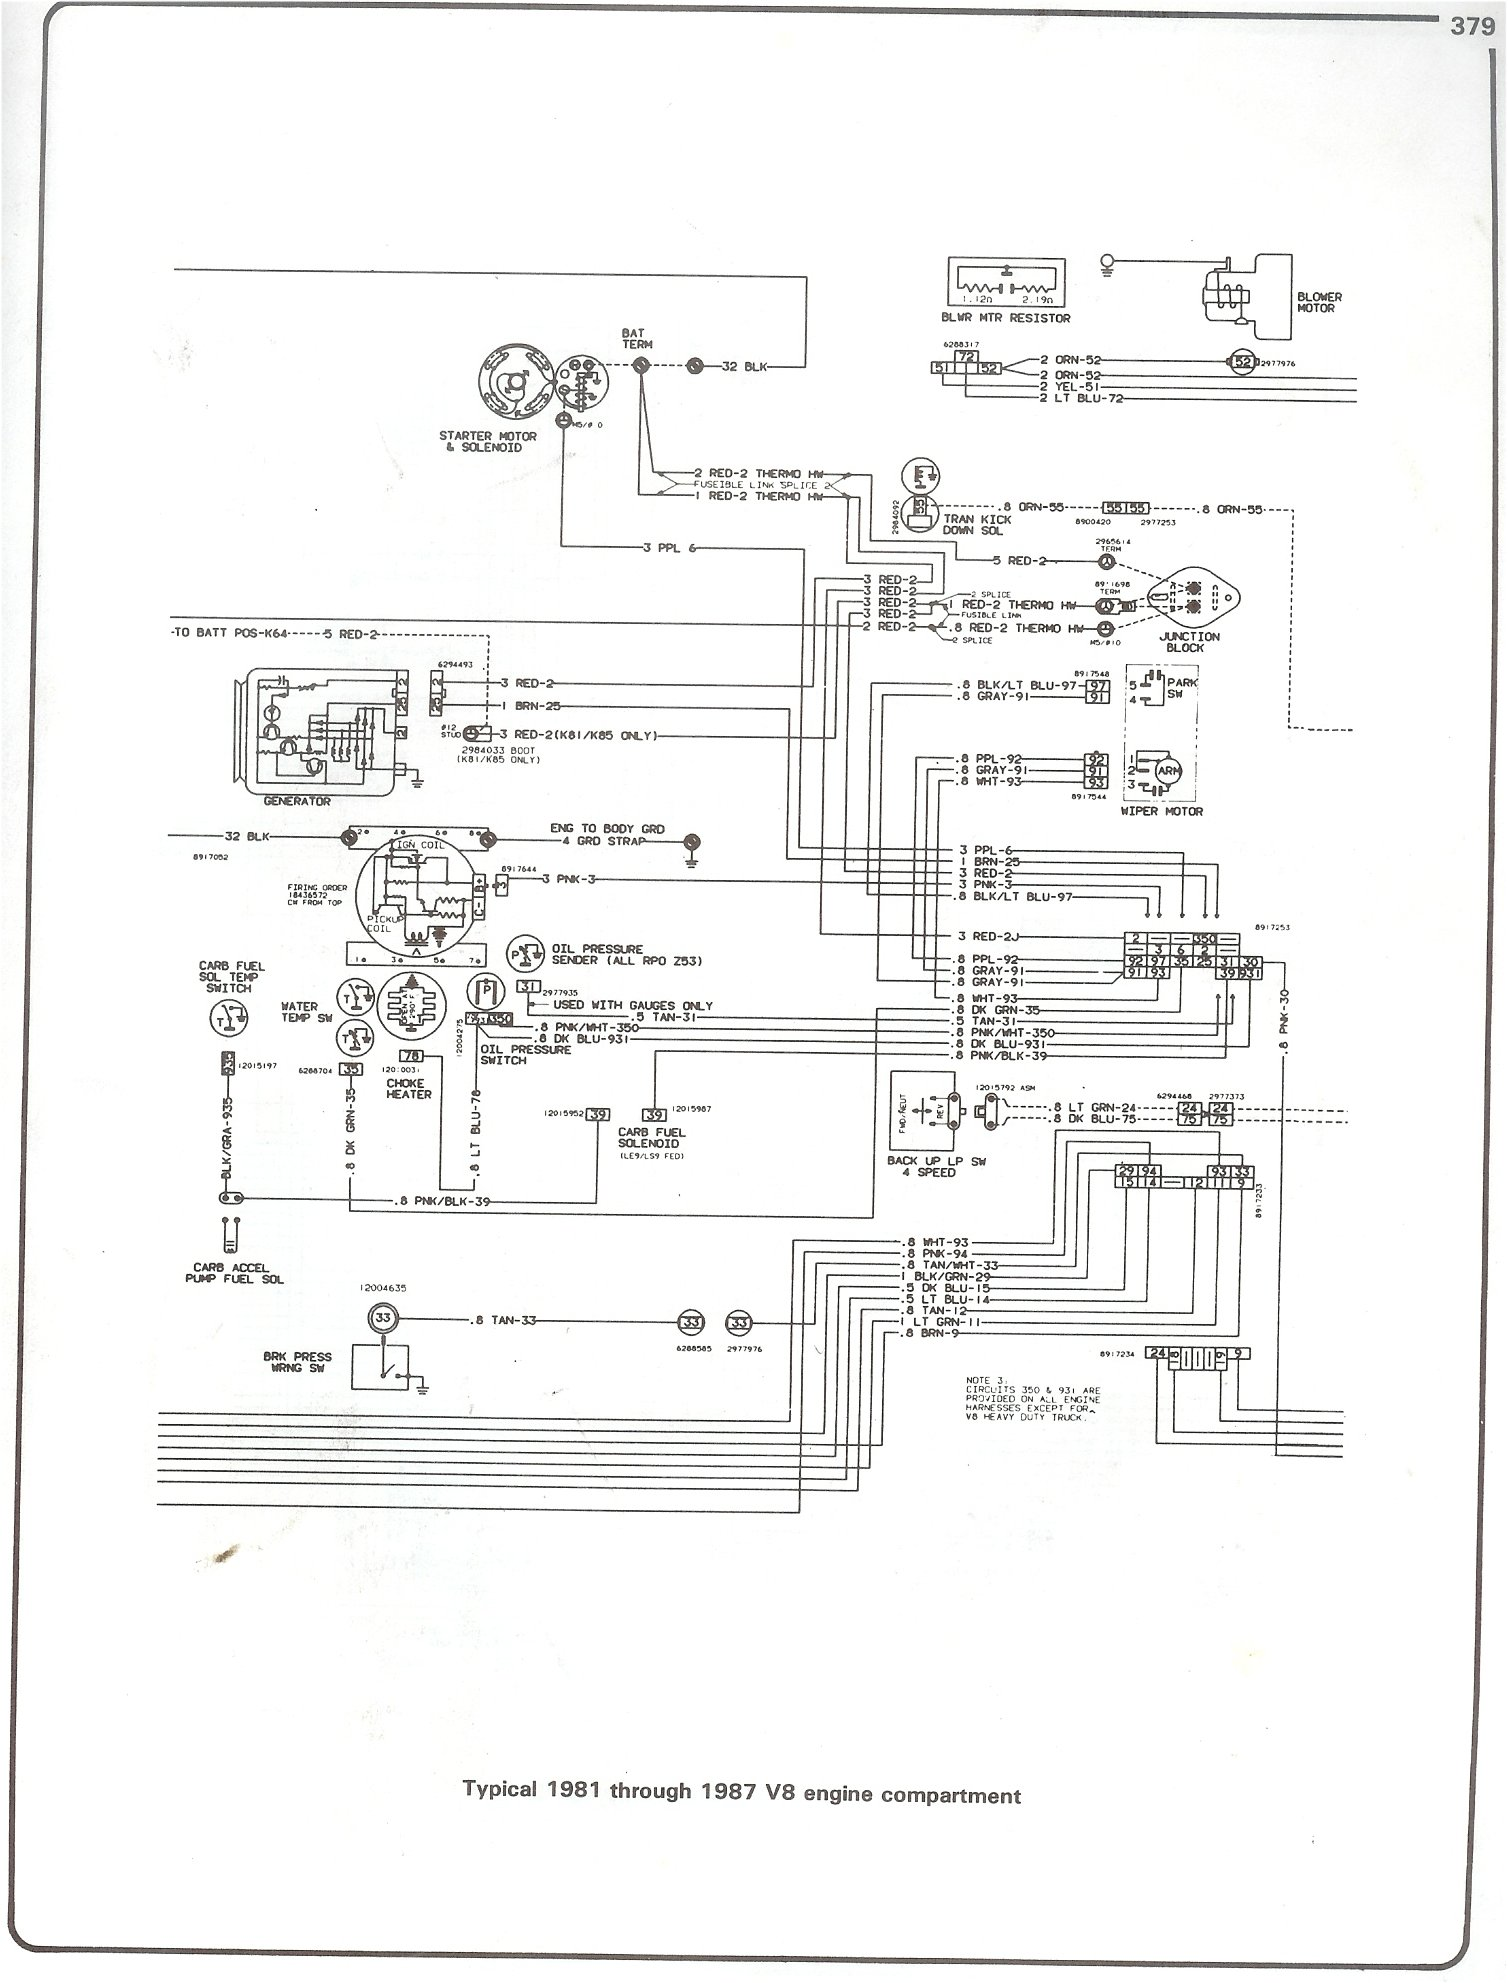 73 87 chevy truck fuse box diagram enthusiast wiring diagrams u2022 rh  rasalibre co 2011 Silverado Fuse Diagram 2013 Silverado Fuse Panel